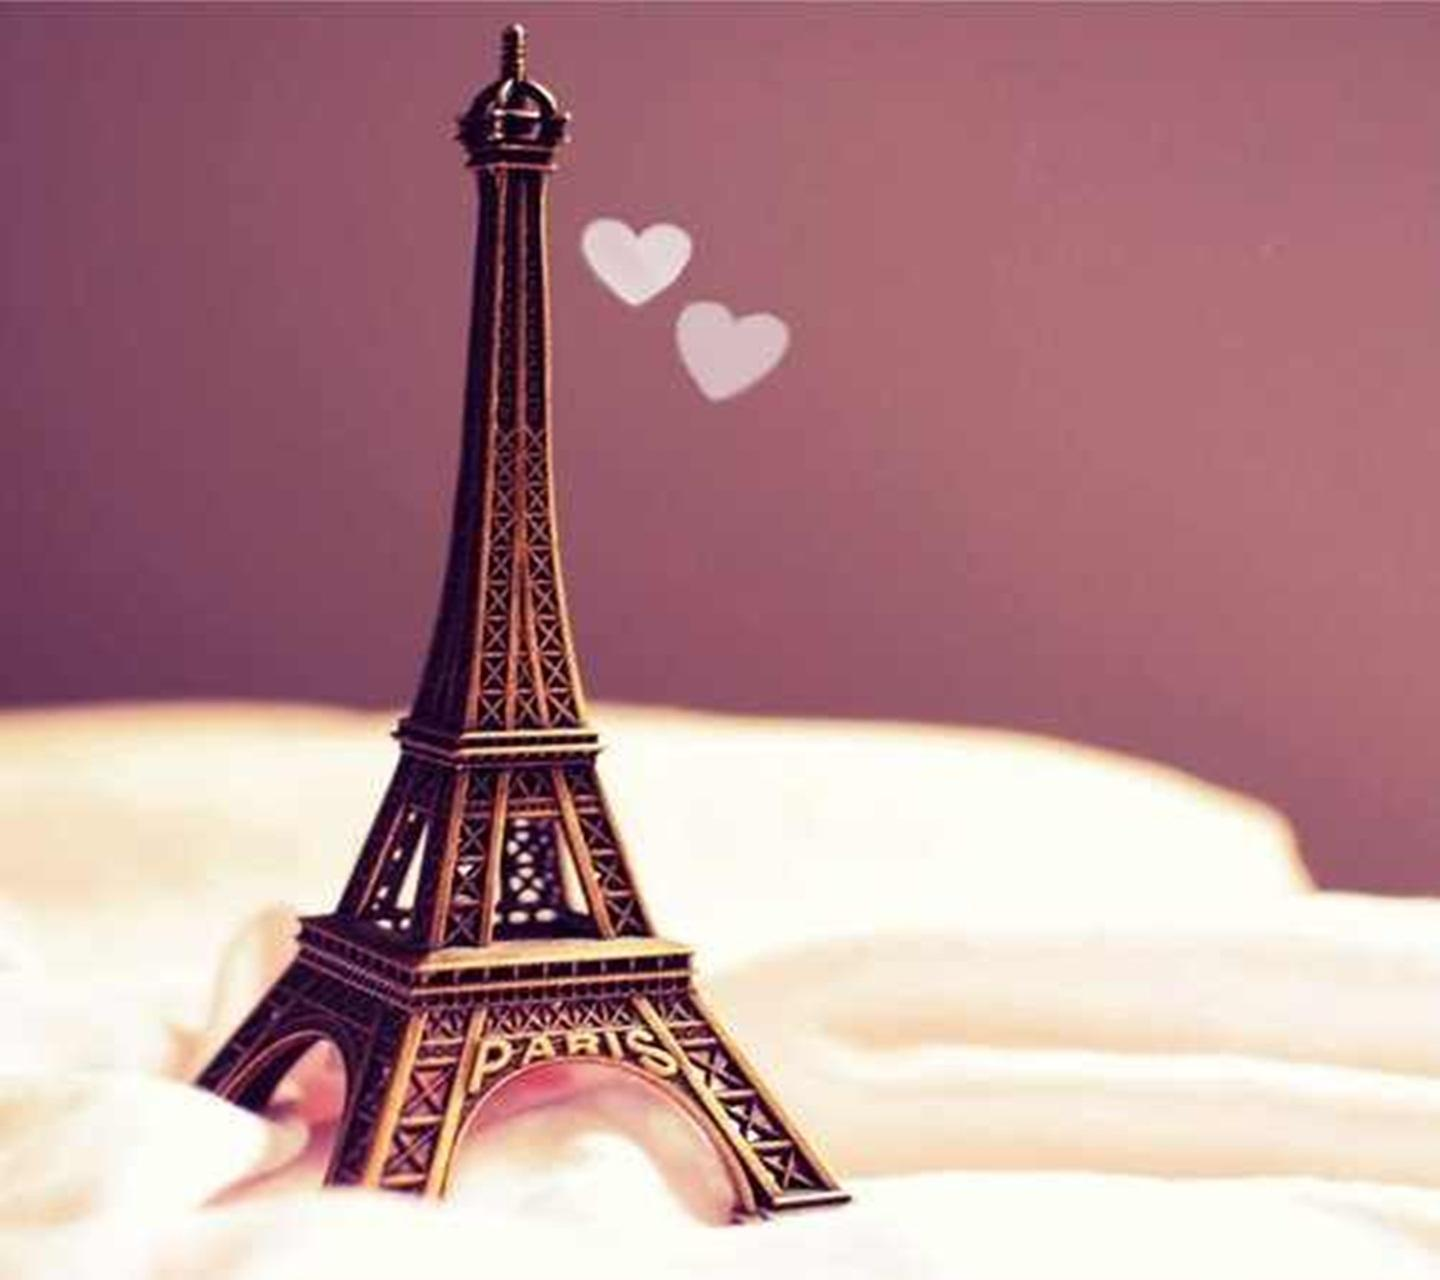 Cute Love Baby Couple Wallpapers For Mobile Download Cute Eiffel Tower Hd Wallpaper Abstract Love